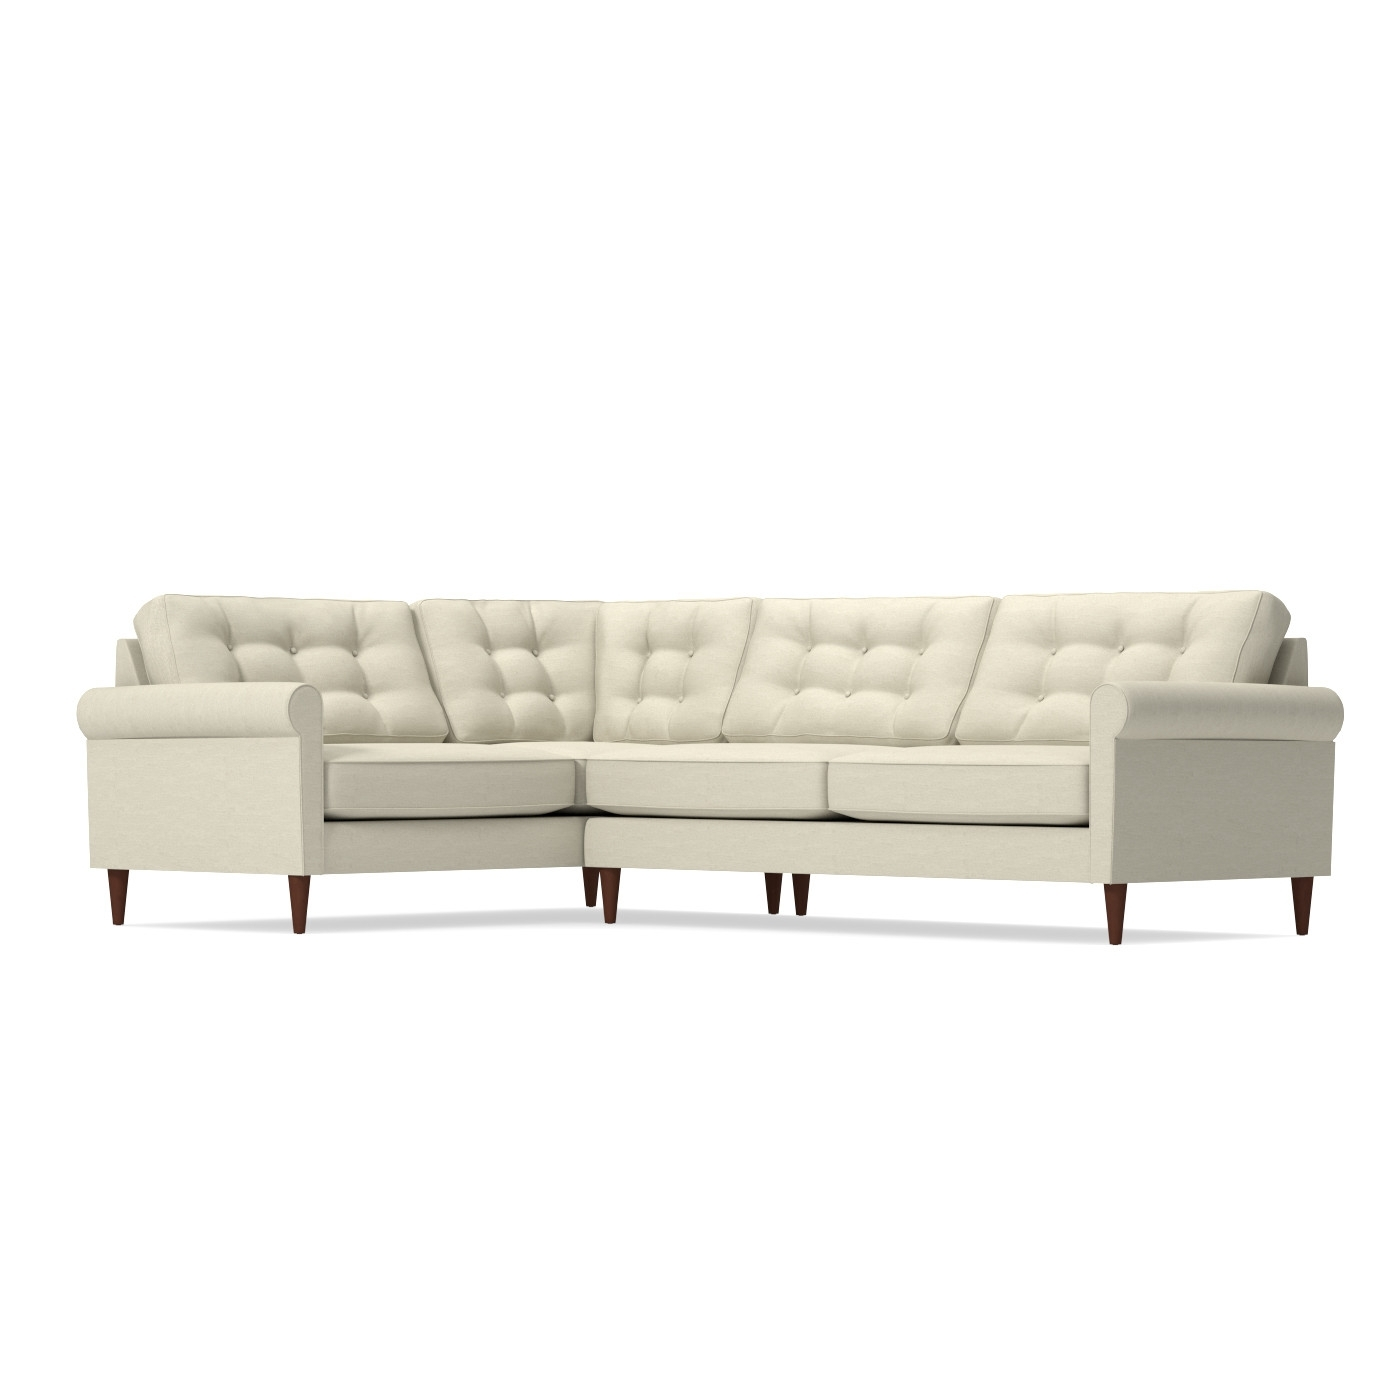 Most Current Eco Friendly Sectional Sofas With Hotelsbacau – Sectional Sofa Ideas (View 19 of 20)